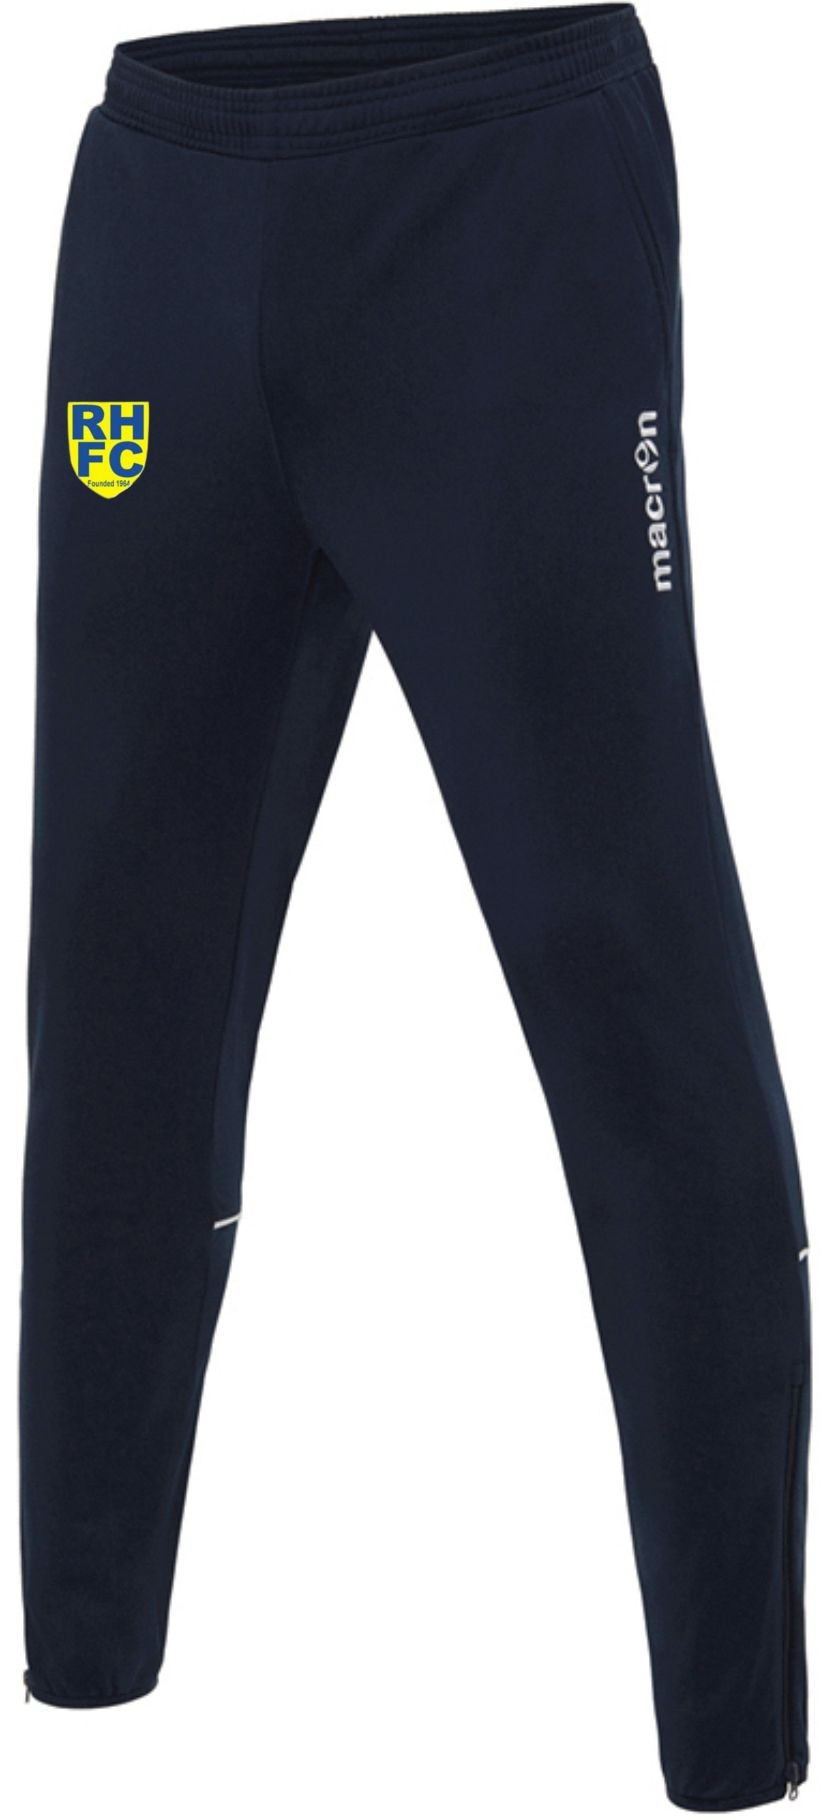 Runwell Sports FC Players Training Pant